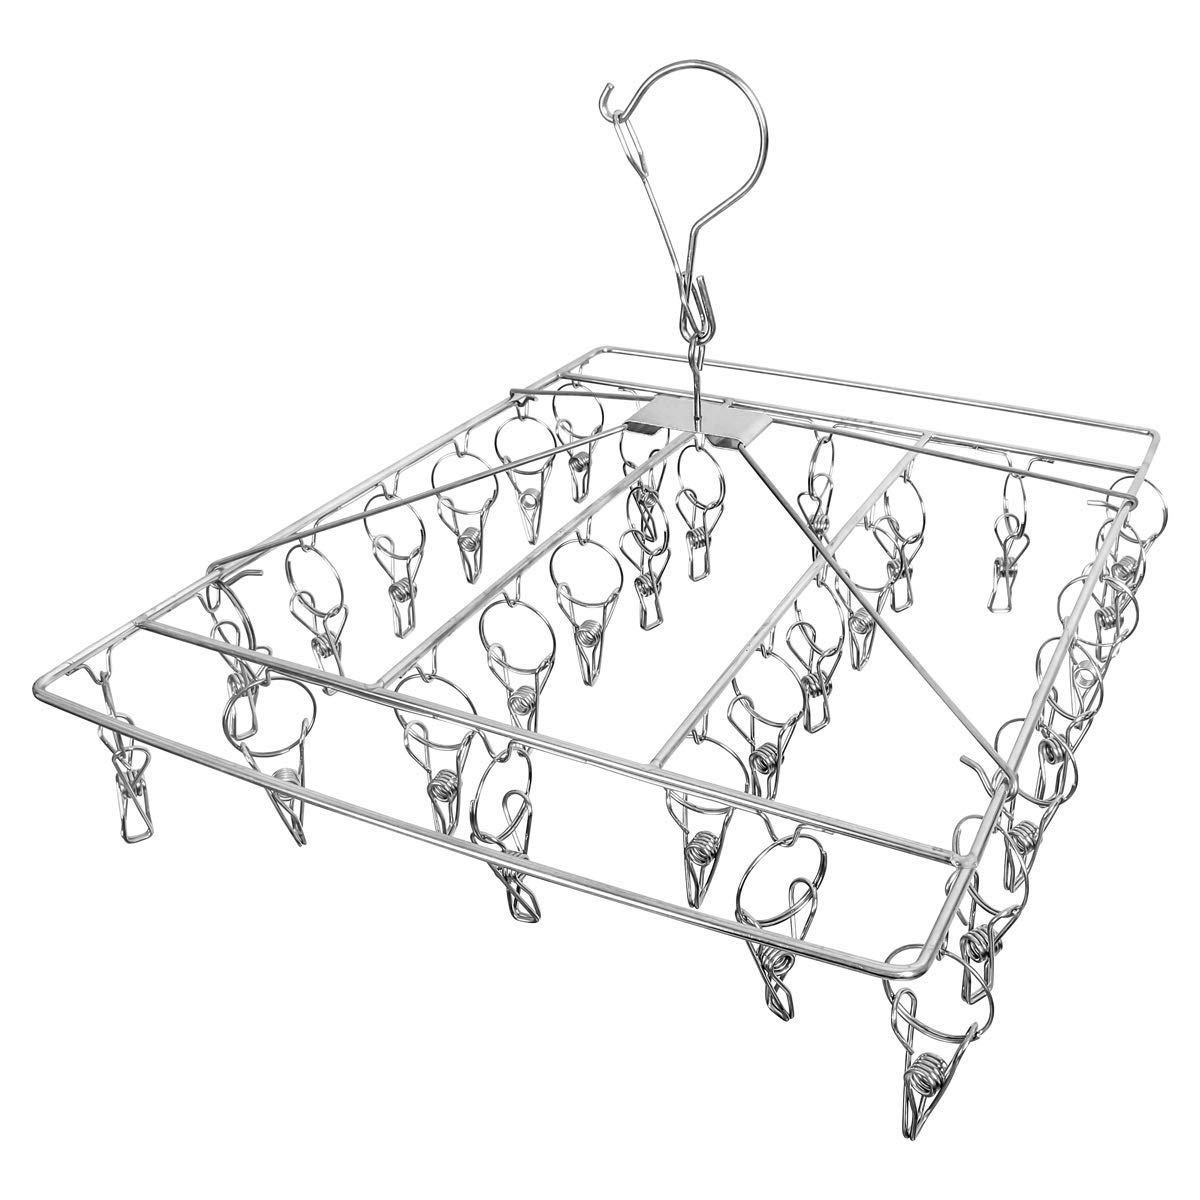 Clothes Drying Rack with 30 Clips Laundry Portable Clothesline Stainless Steel Baby Clothes Foldable Storage Closet